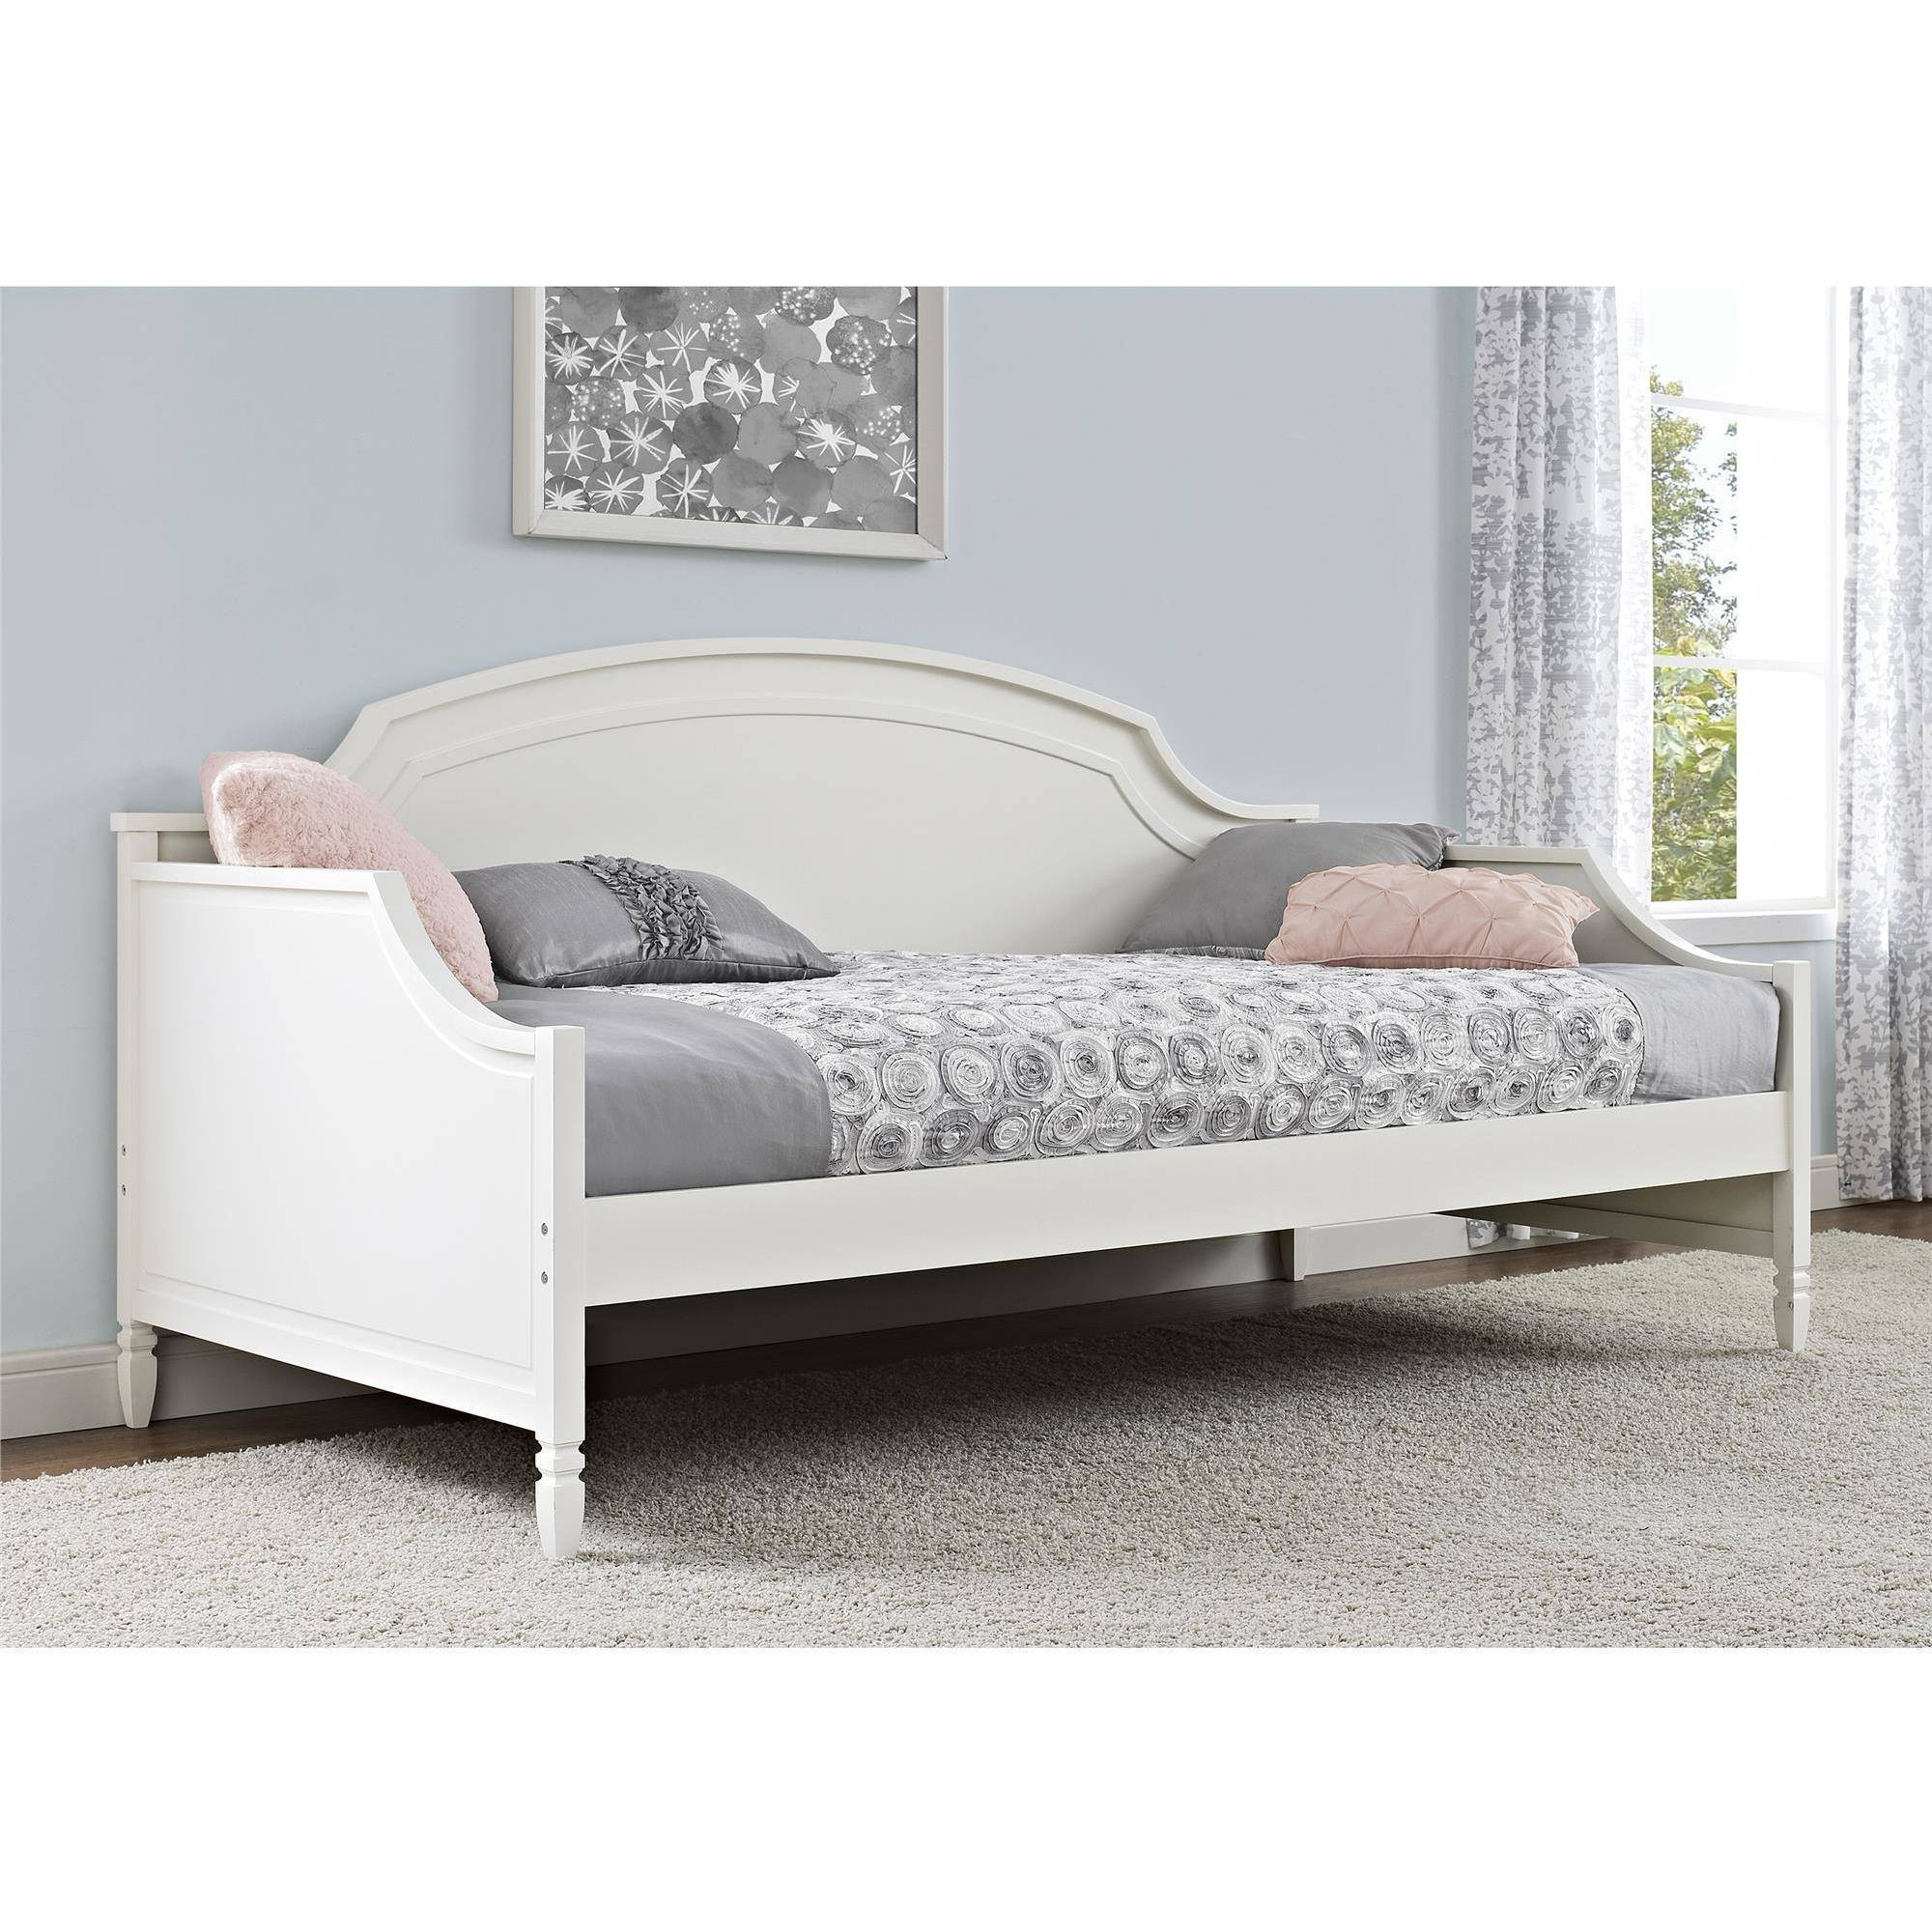 better homes and gardens lillian twin daybed white walmart com